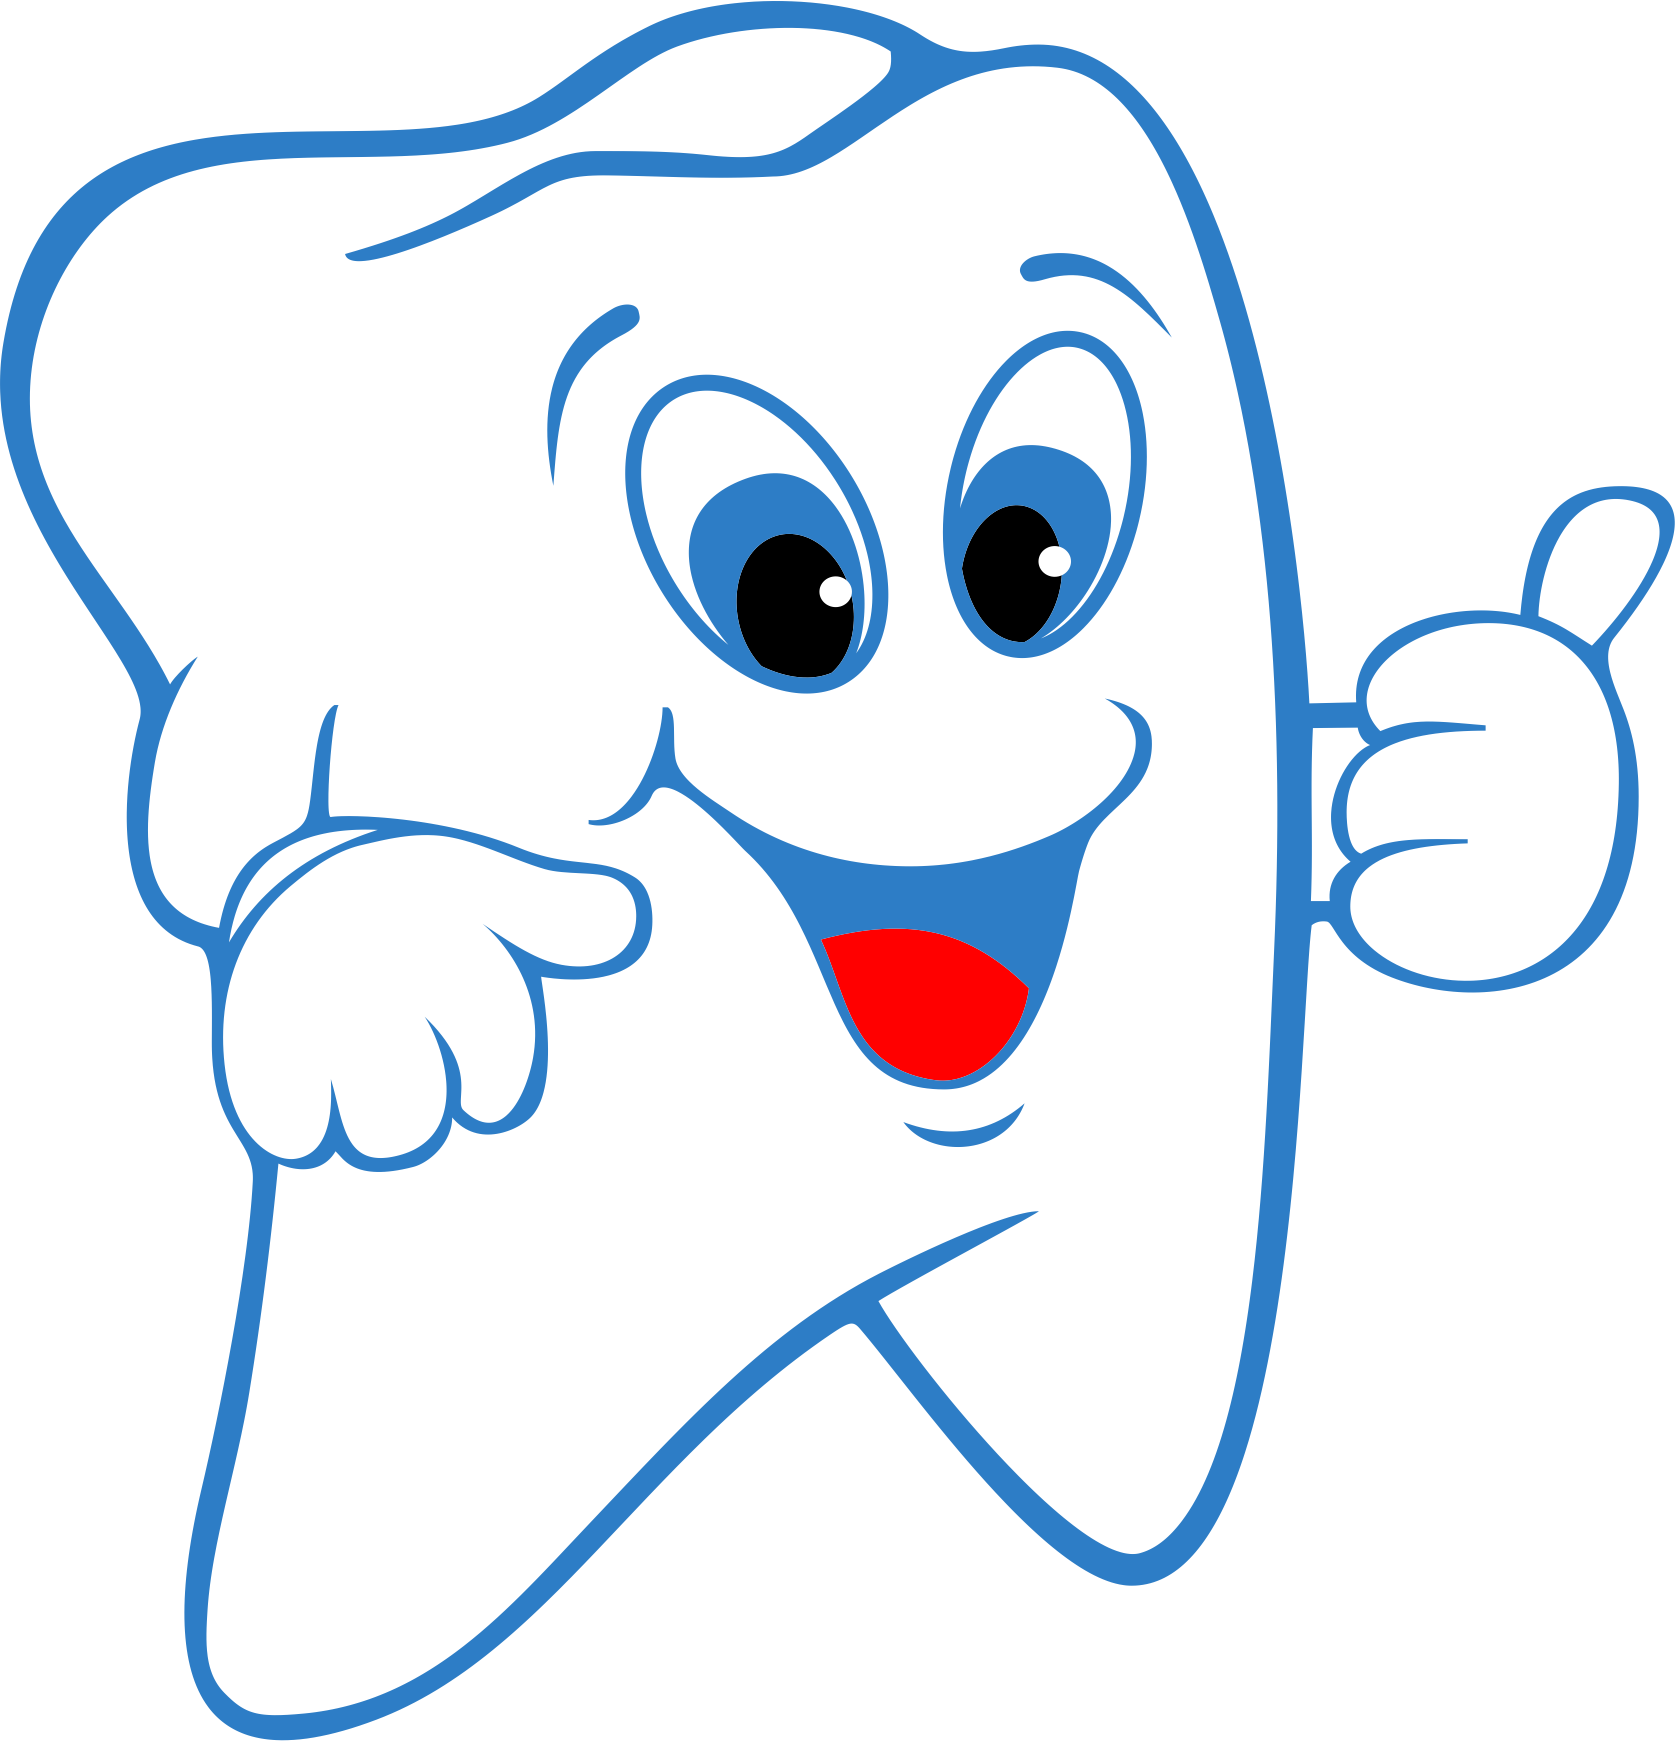 Teeth images cartoon tooth. Taste clipart sensory memory